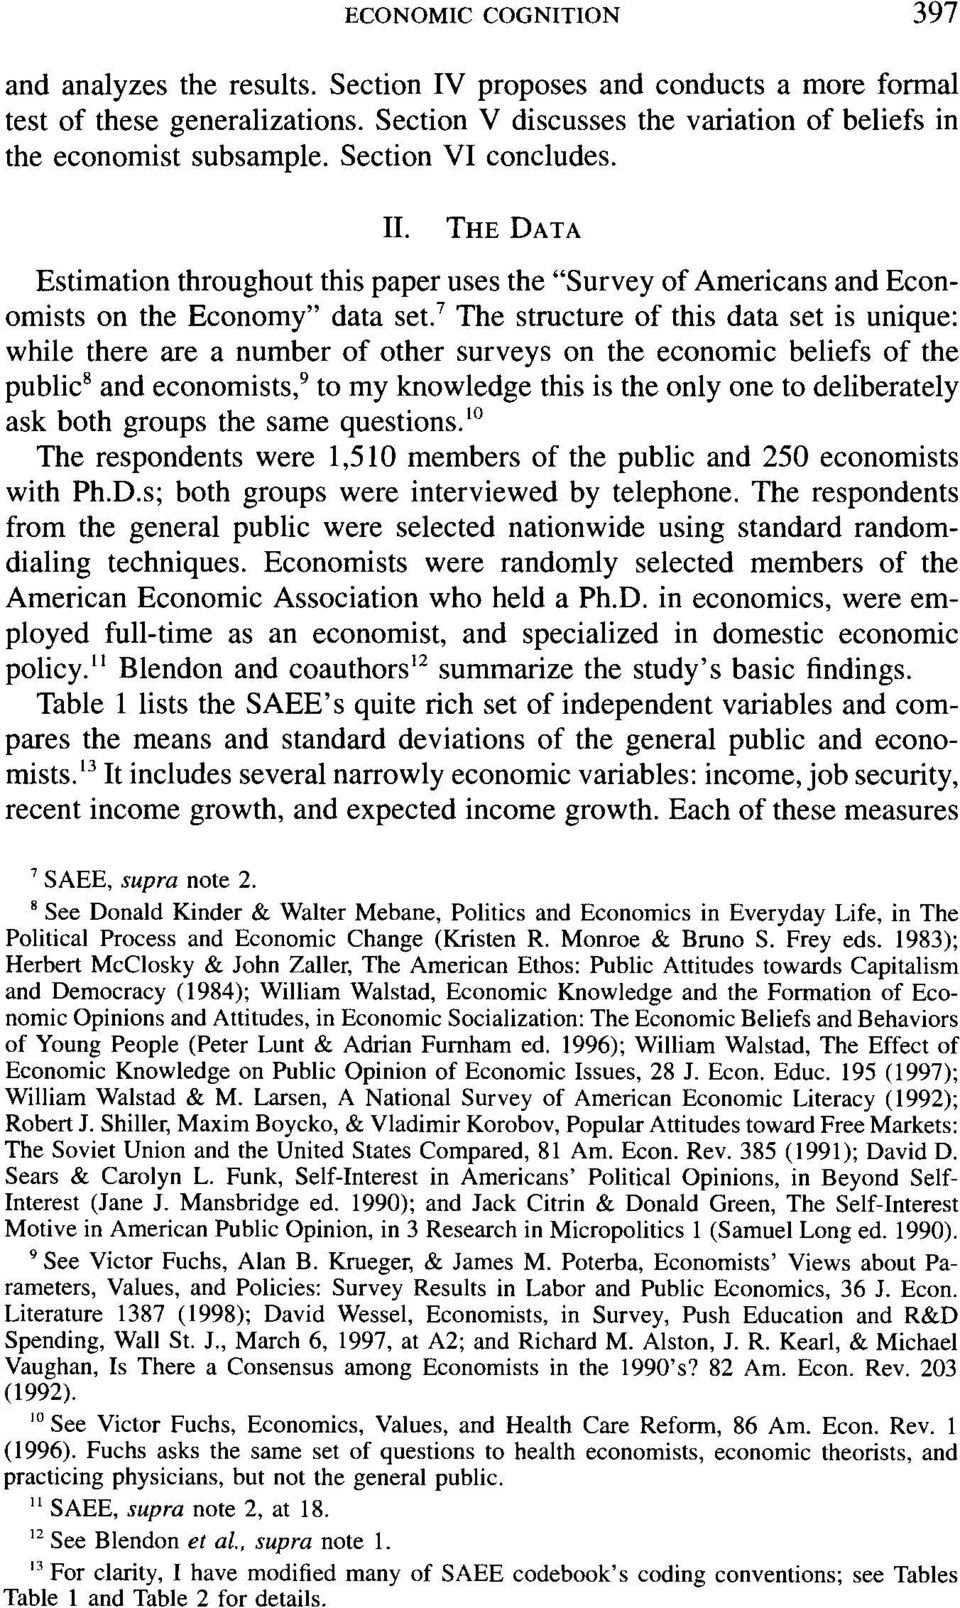 7 The structure of this data set is unique: while there are a number of other surveys on the economic beliefs of the public8 and economists,9 to my knowledge this is the only one to deliberately ask